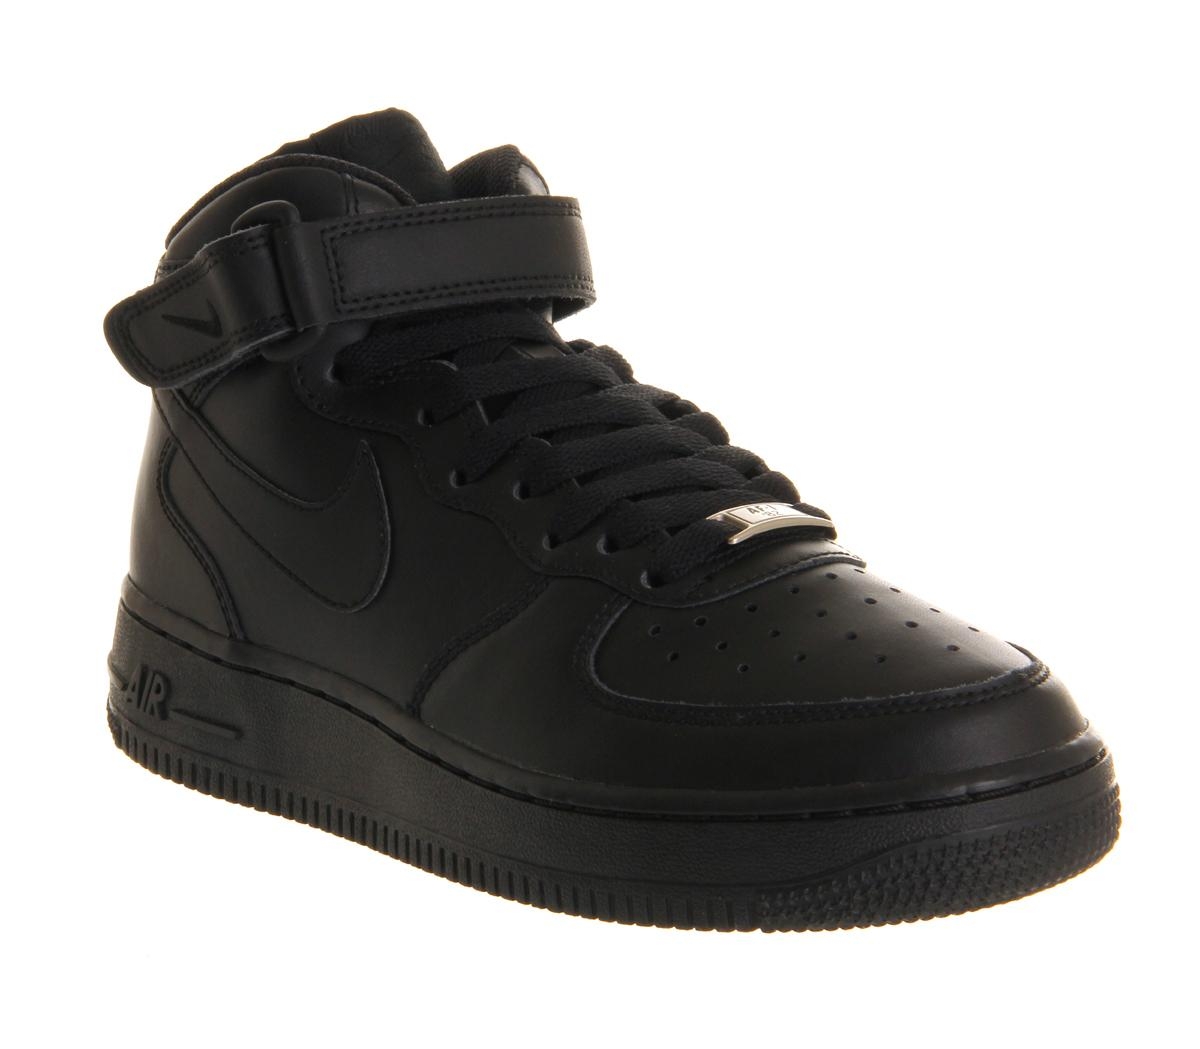 air force 1 all black mid